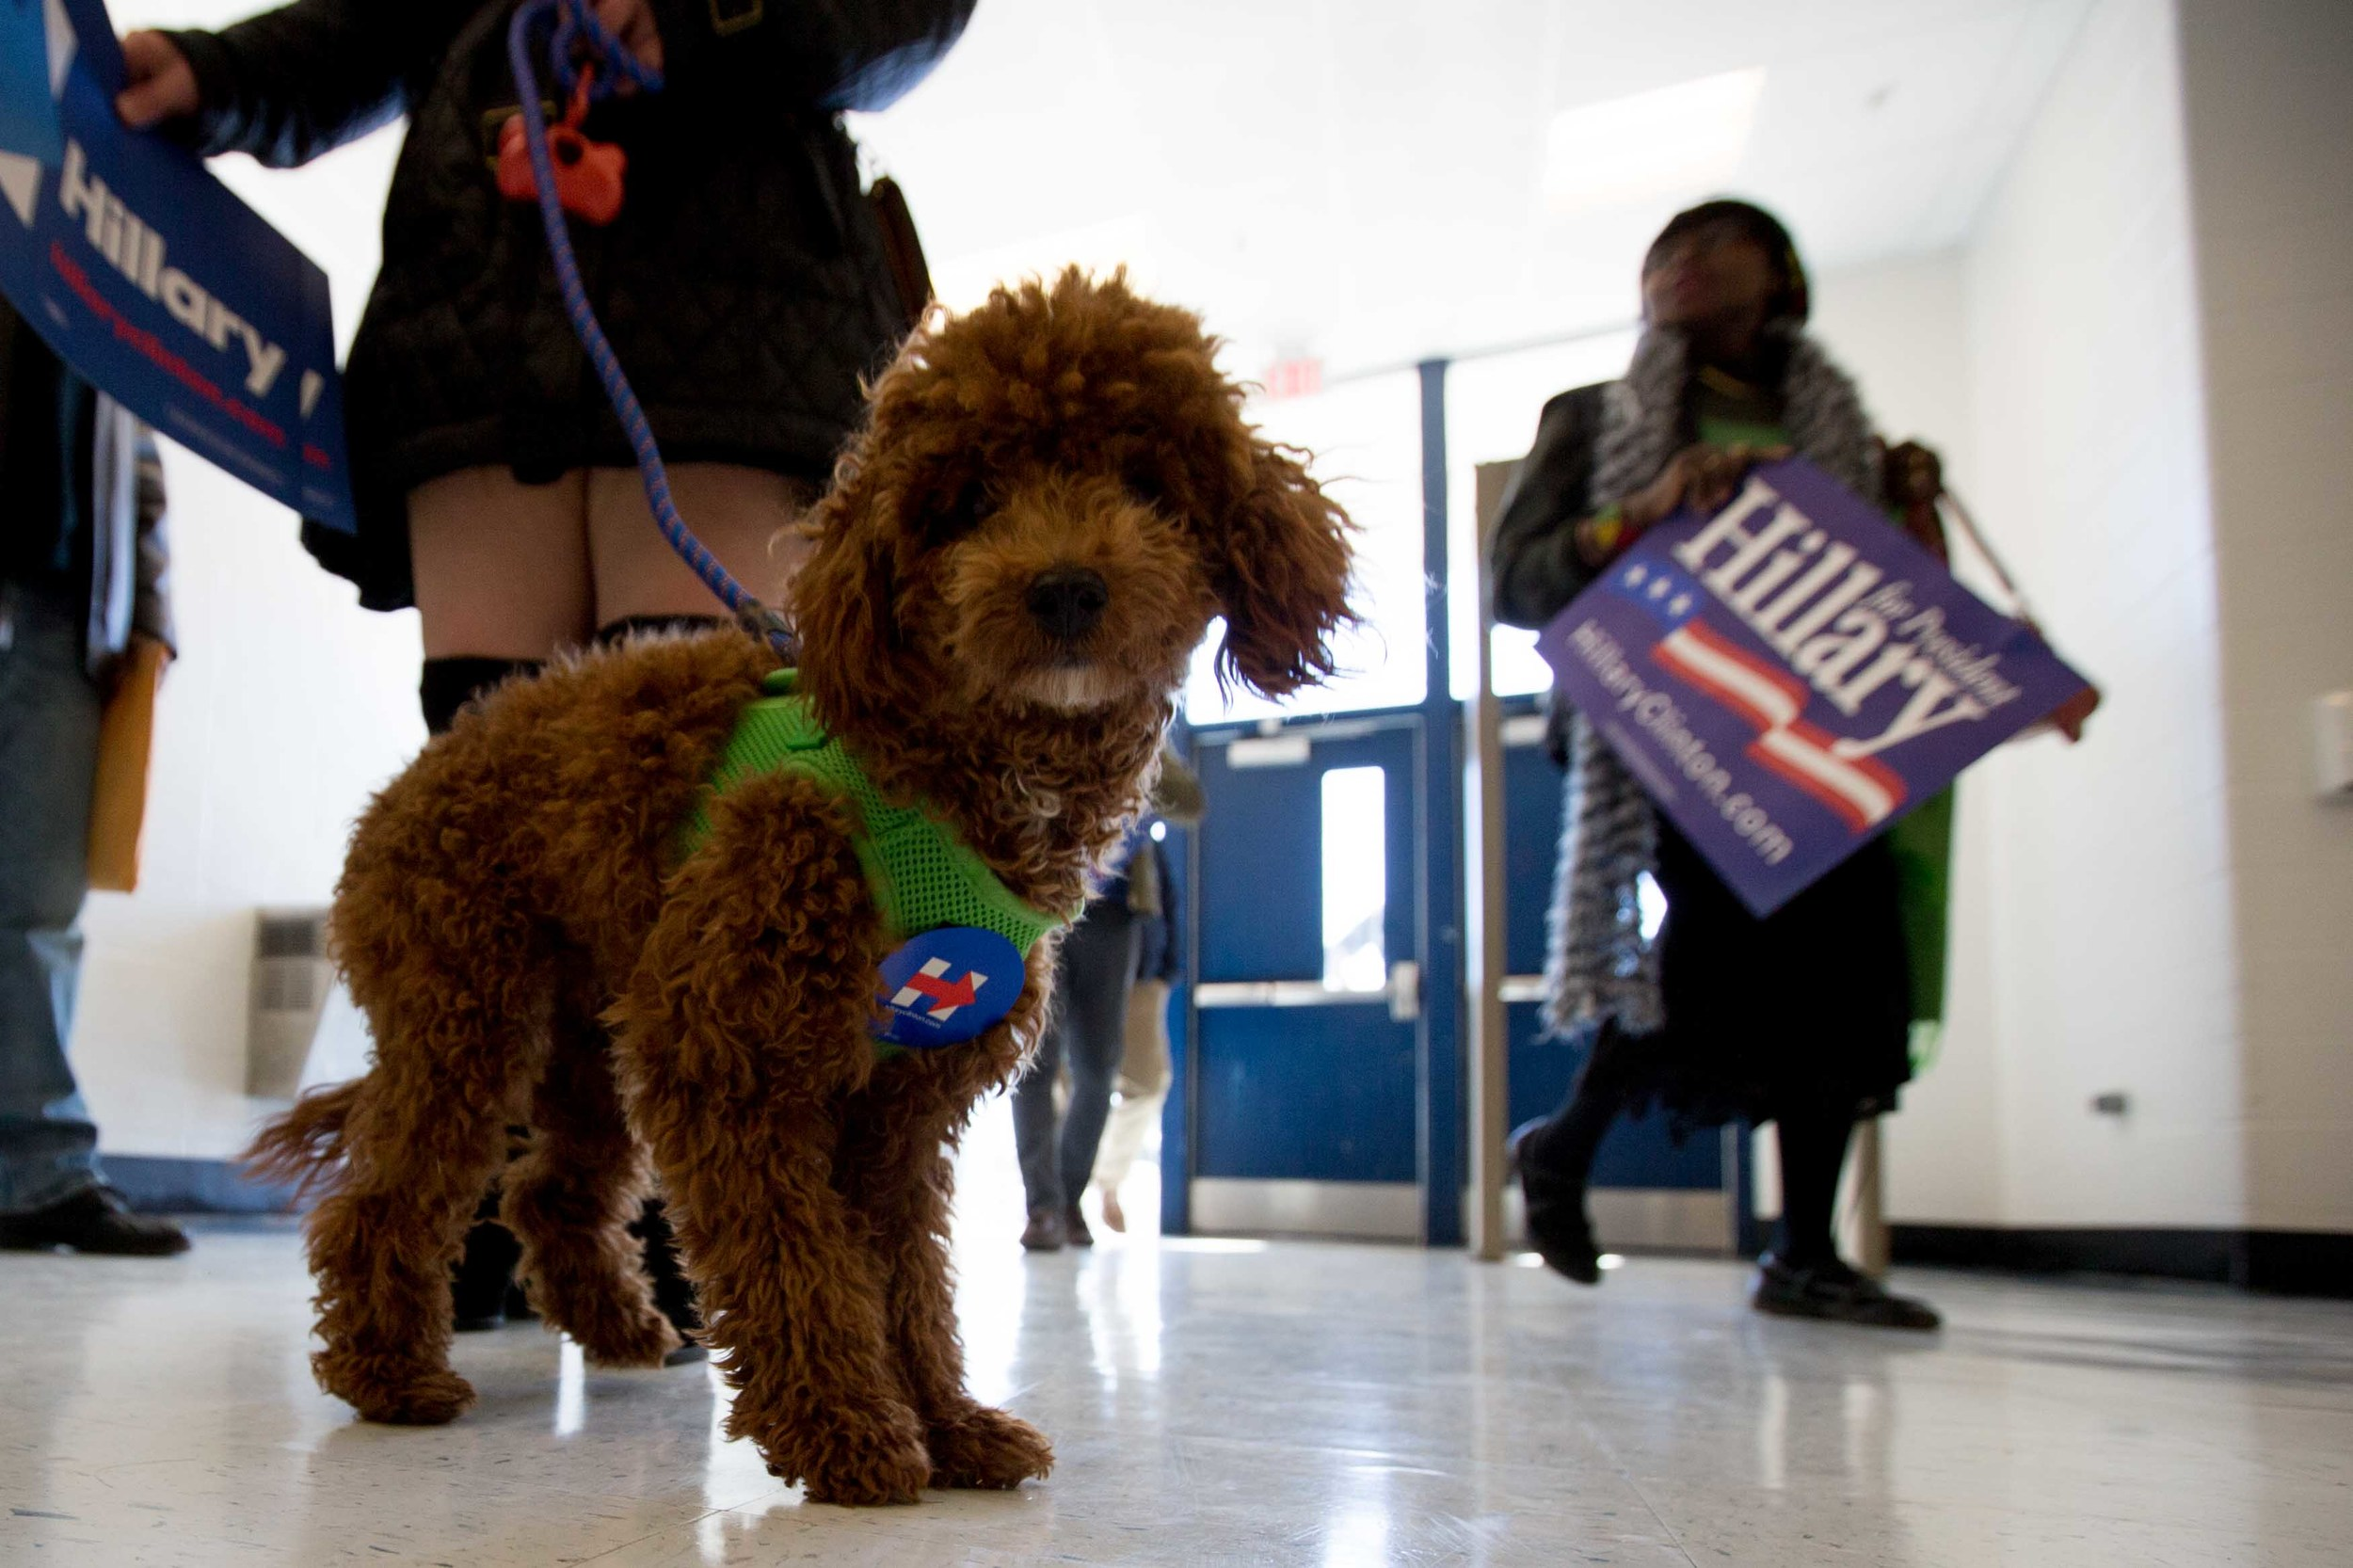 A woman brings her dog, who's wearing a campaign sticker,  to see former President Bill Clinton speak during a campaign stop for his wife, Democratic presidential candidate Hillary Clinton, at North Clayton High School. (Credit Image: © Branden Camp via ZUMA Wire